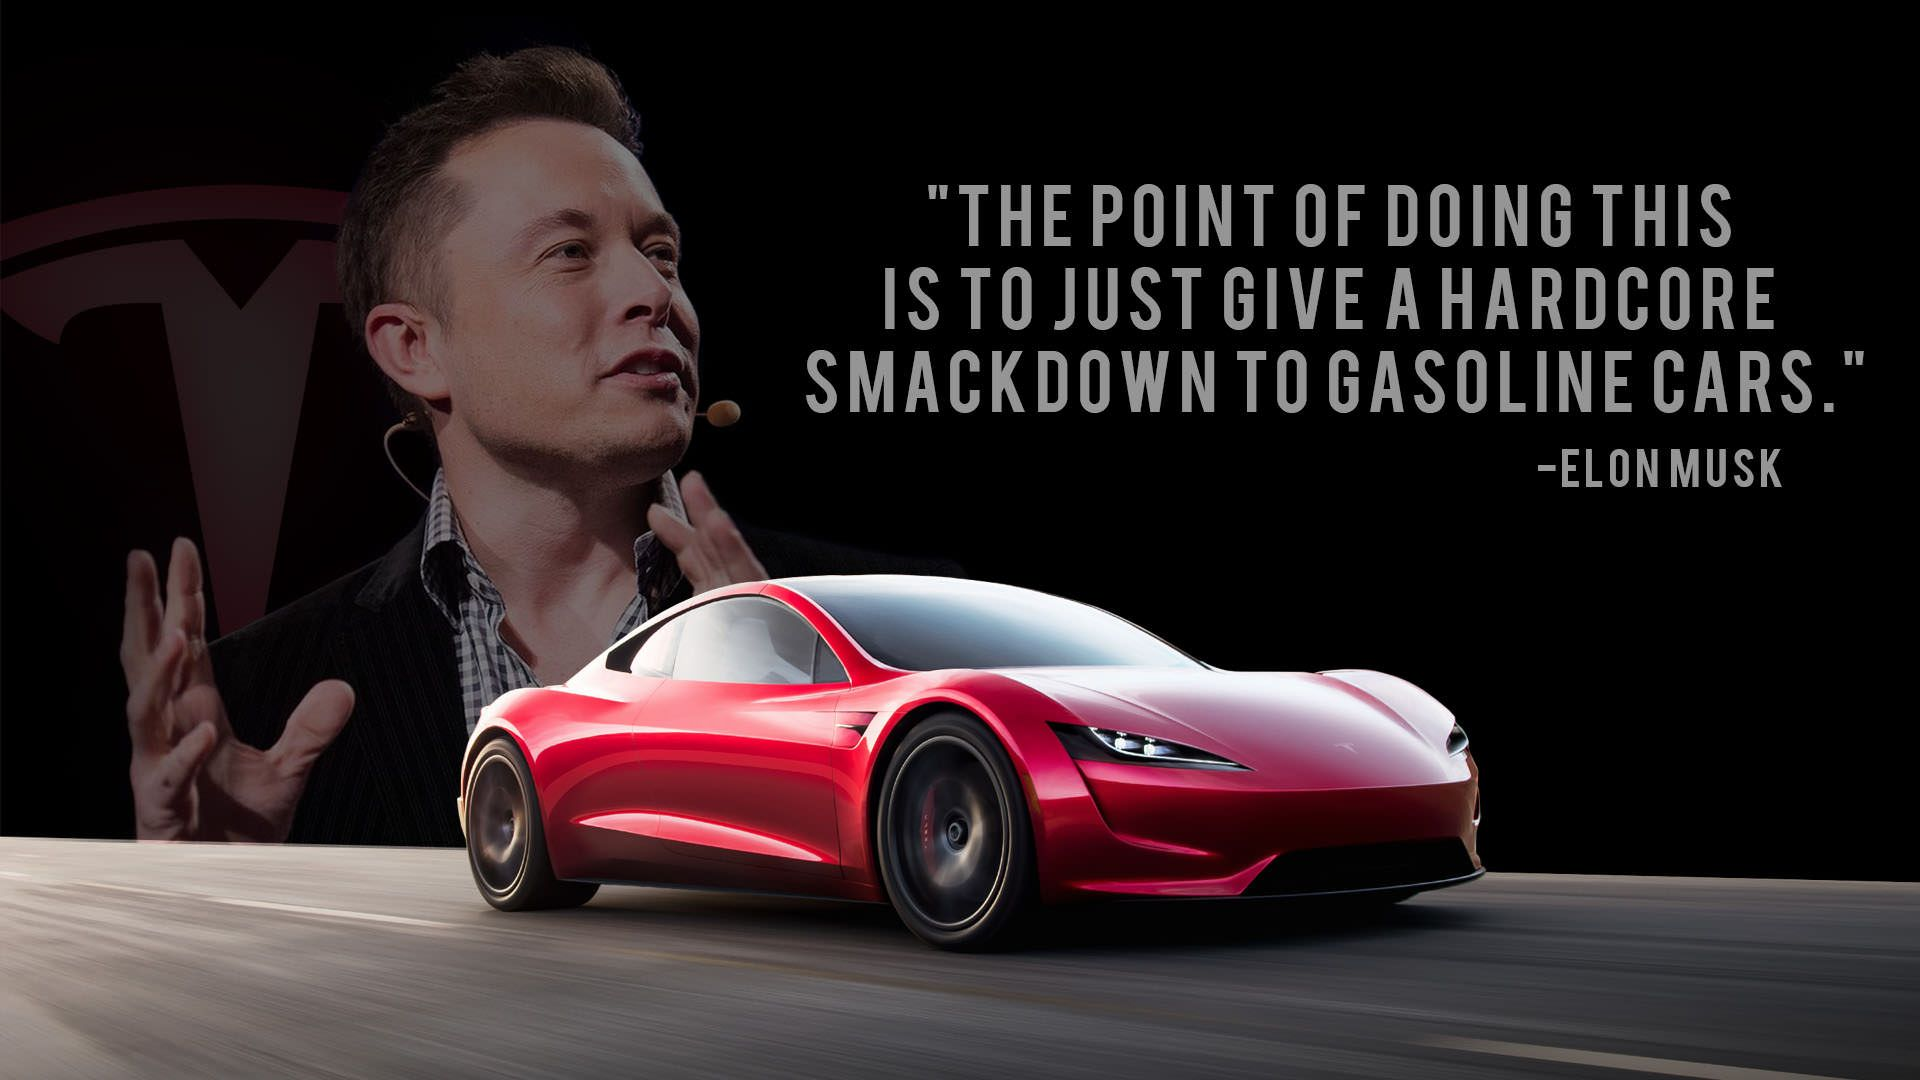 1920x1080] elon musk roadster wallpaper | reddit hd wallpapers